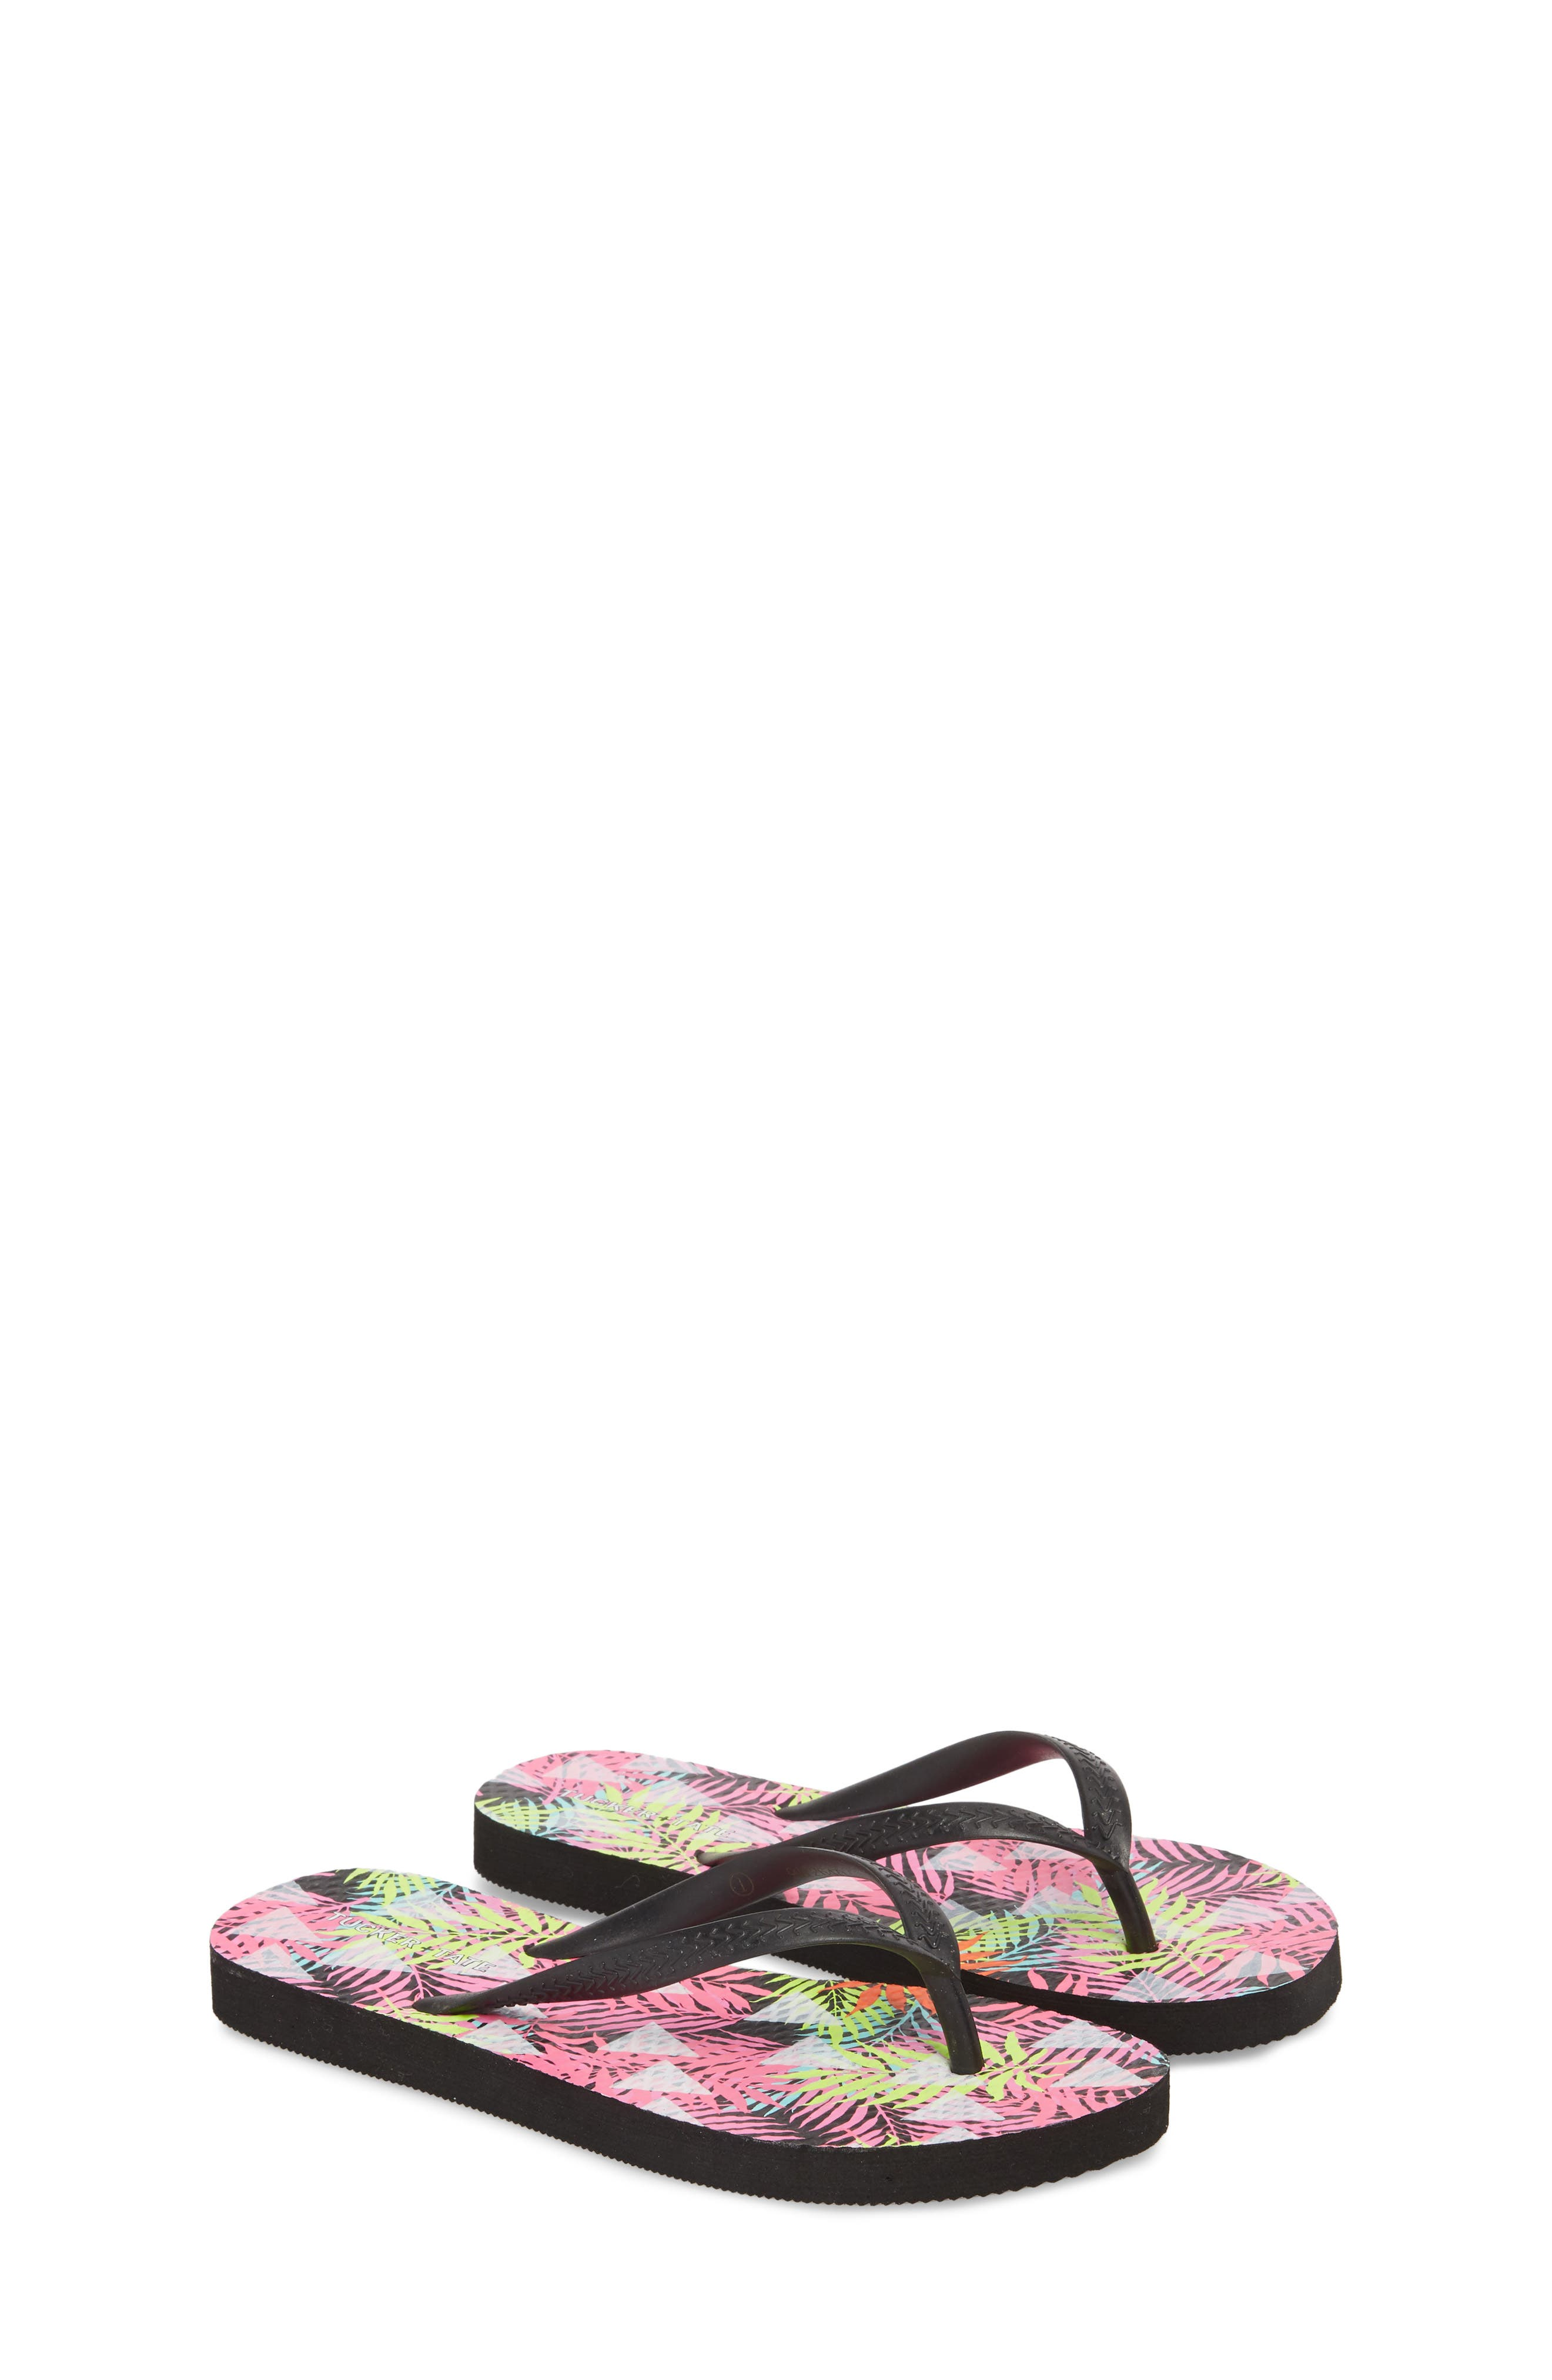 'Clementyne' Flip Flop,                             Alternate thumbnail 3, color,                             Black